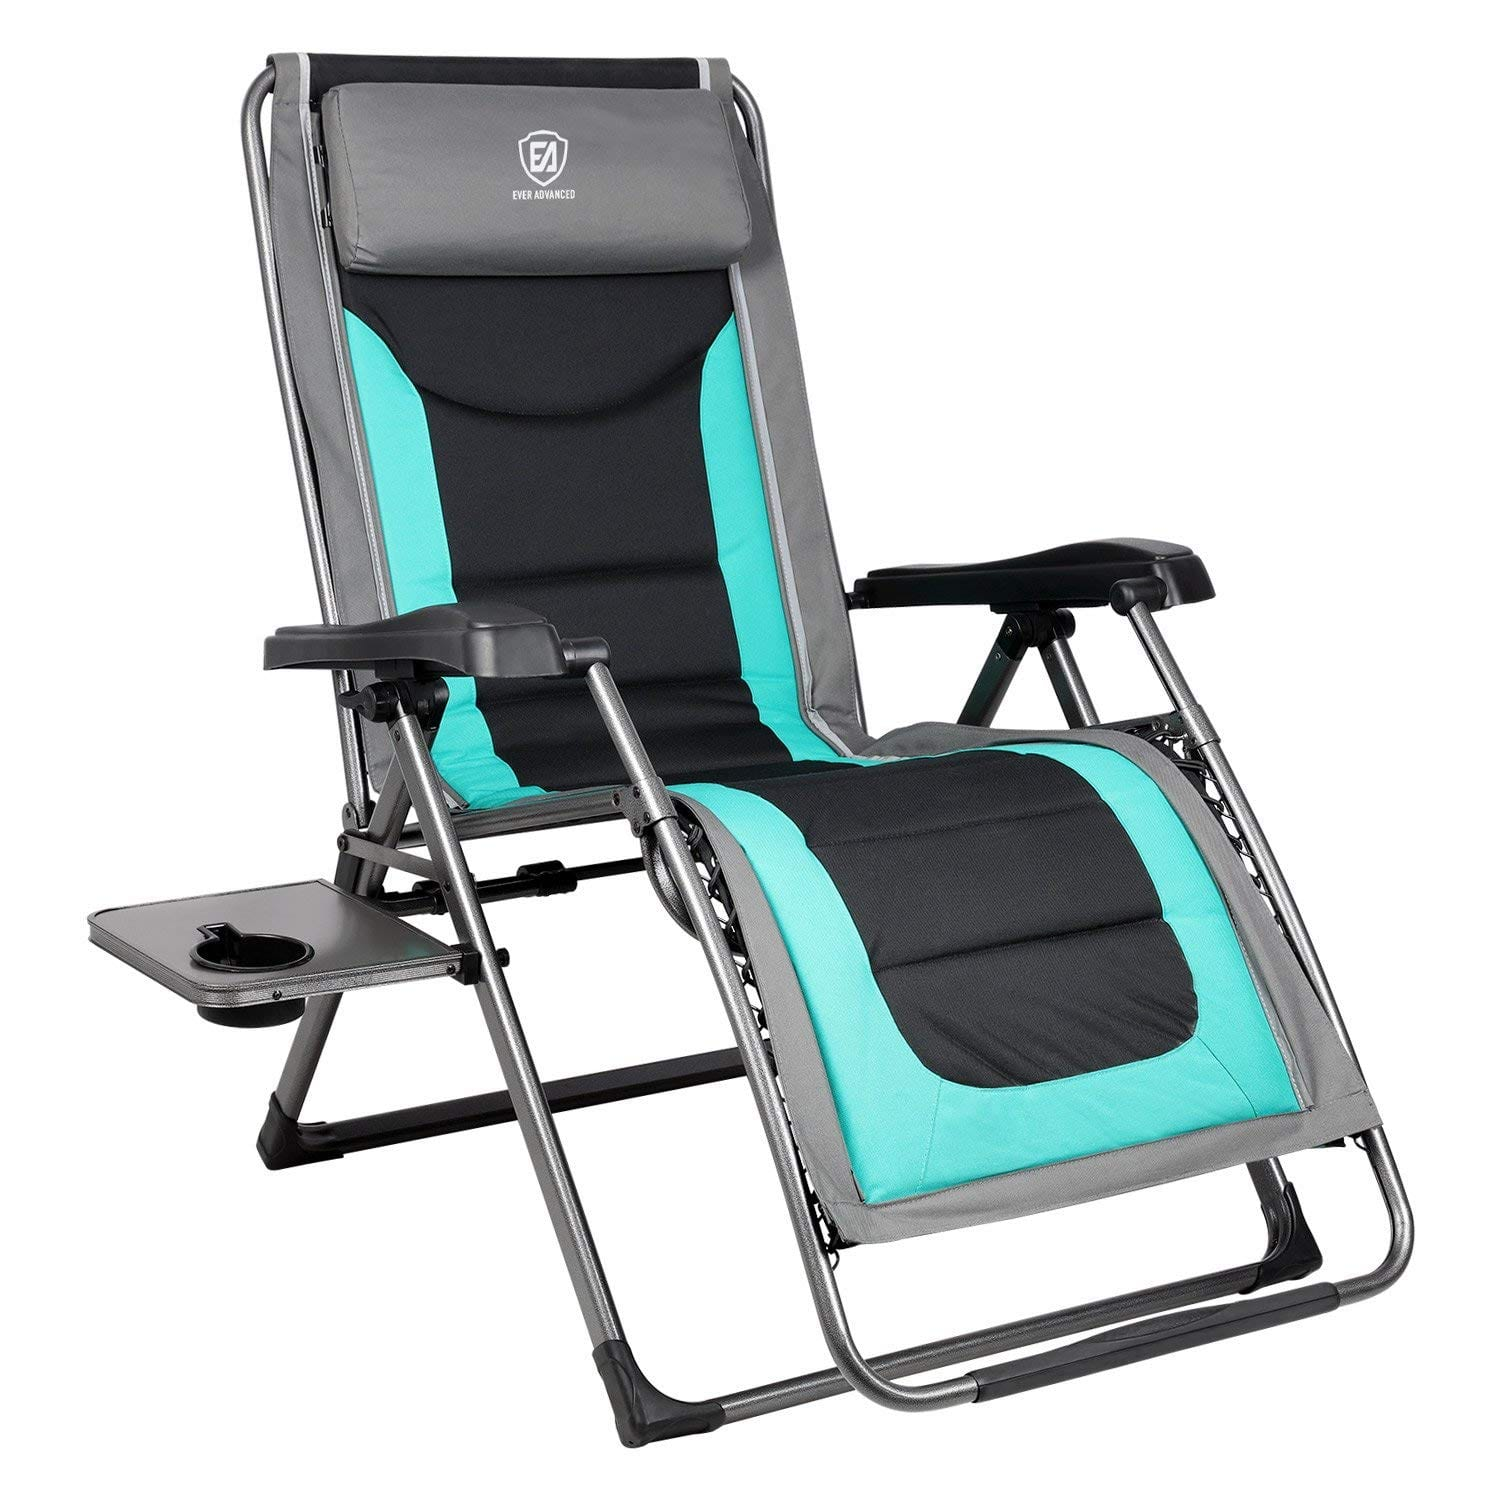 The EVER ADVANCED XL Zero Gravity Recliner and Padded Patio Lounger Chair